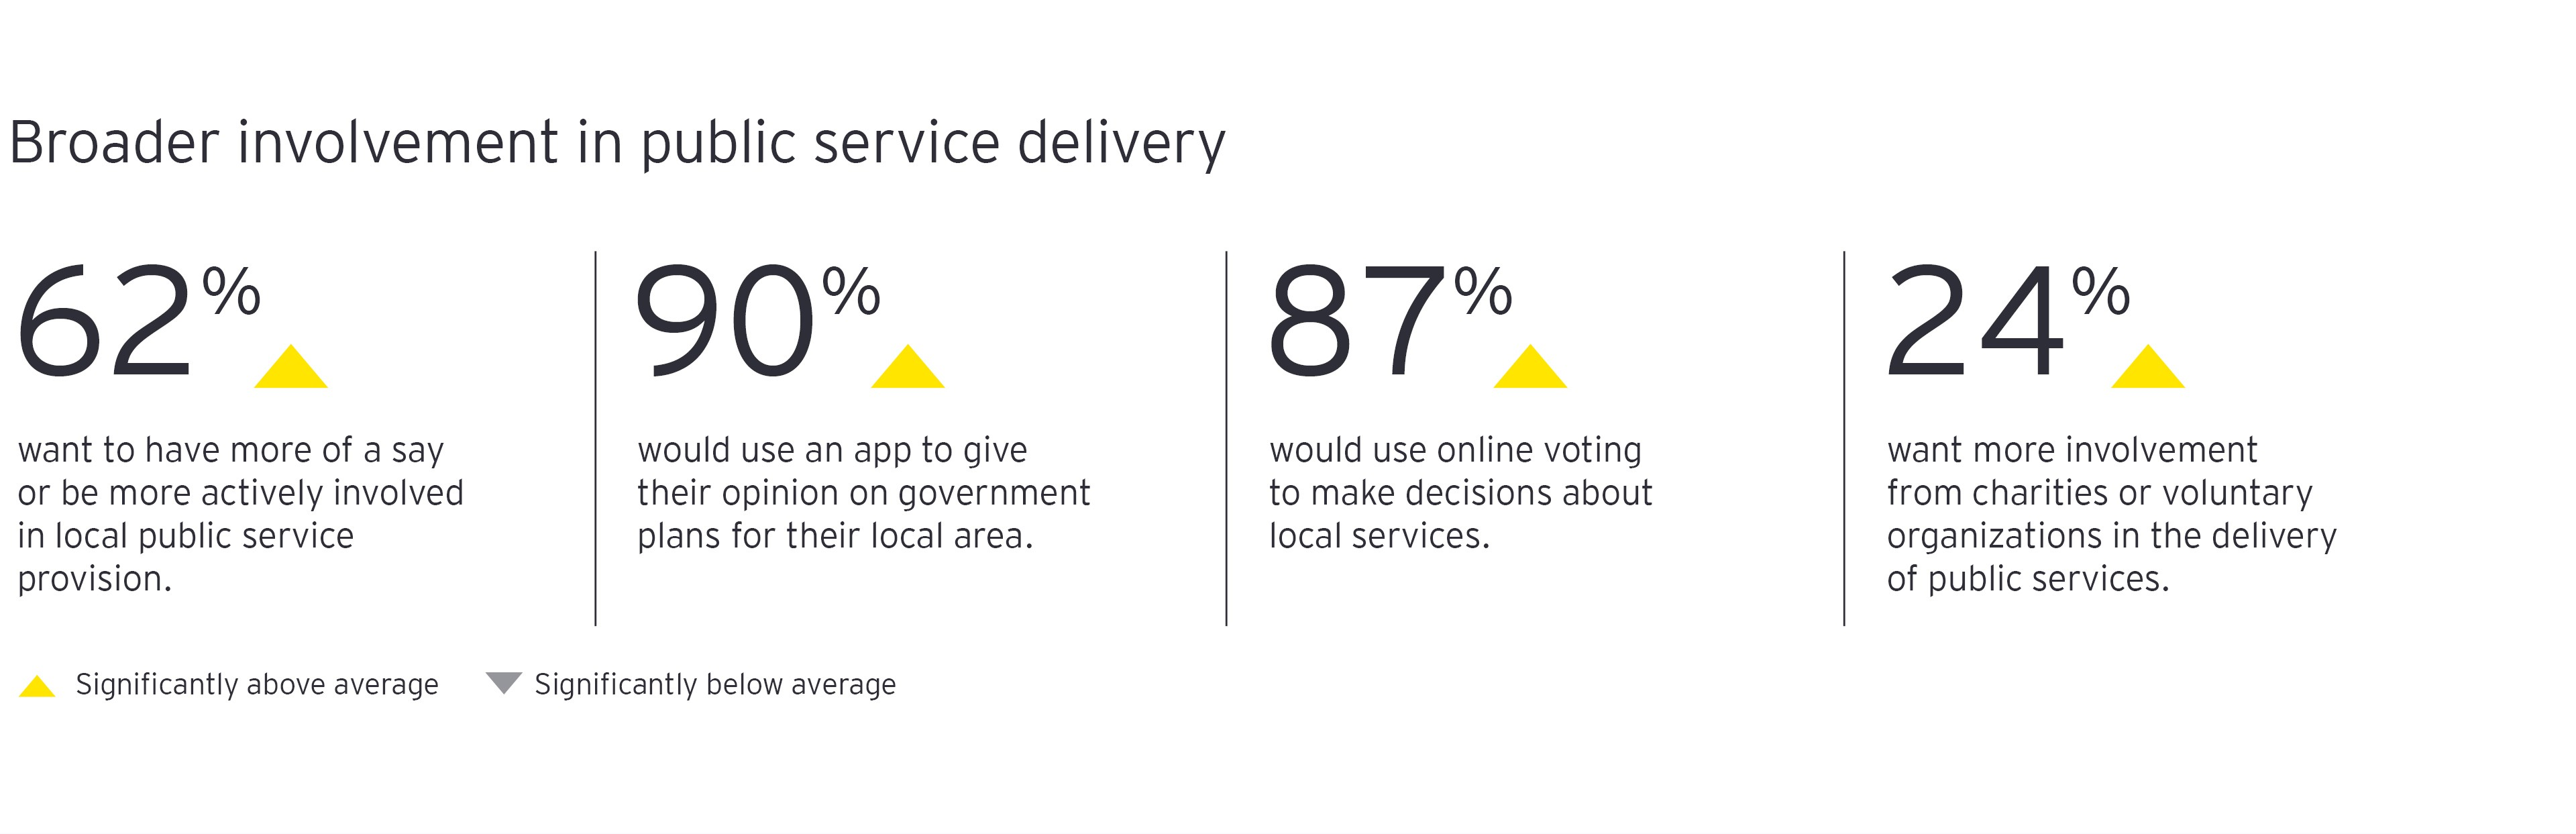 Broader involvement in public service delivery chart